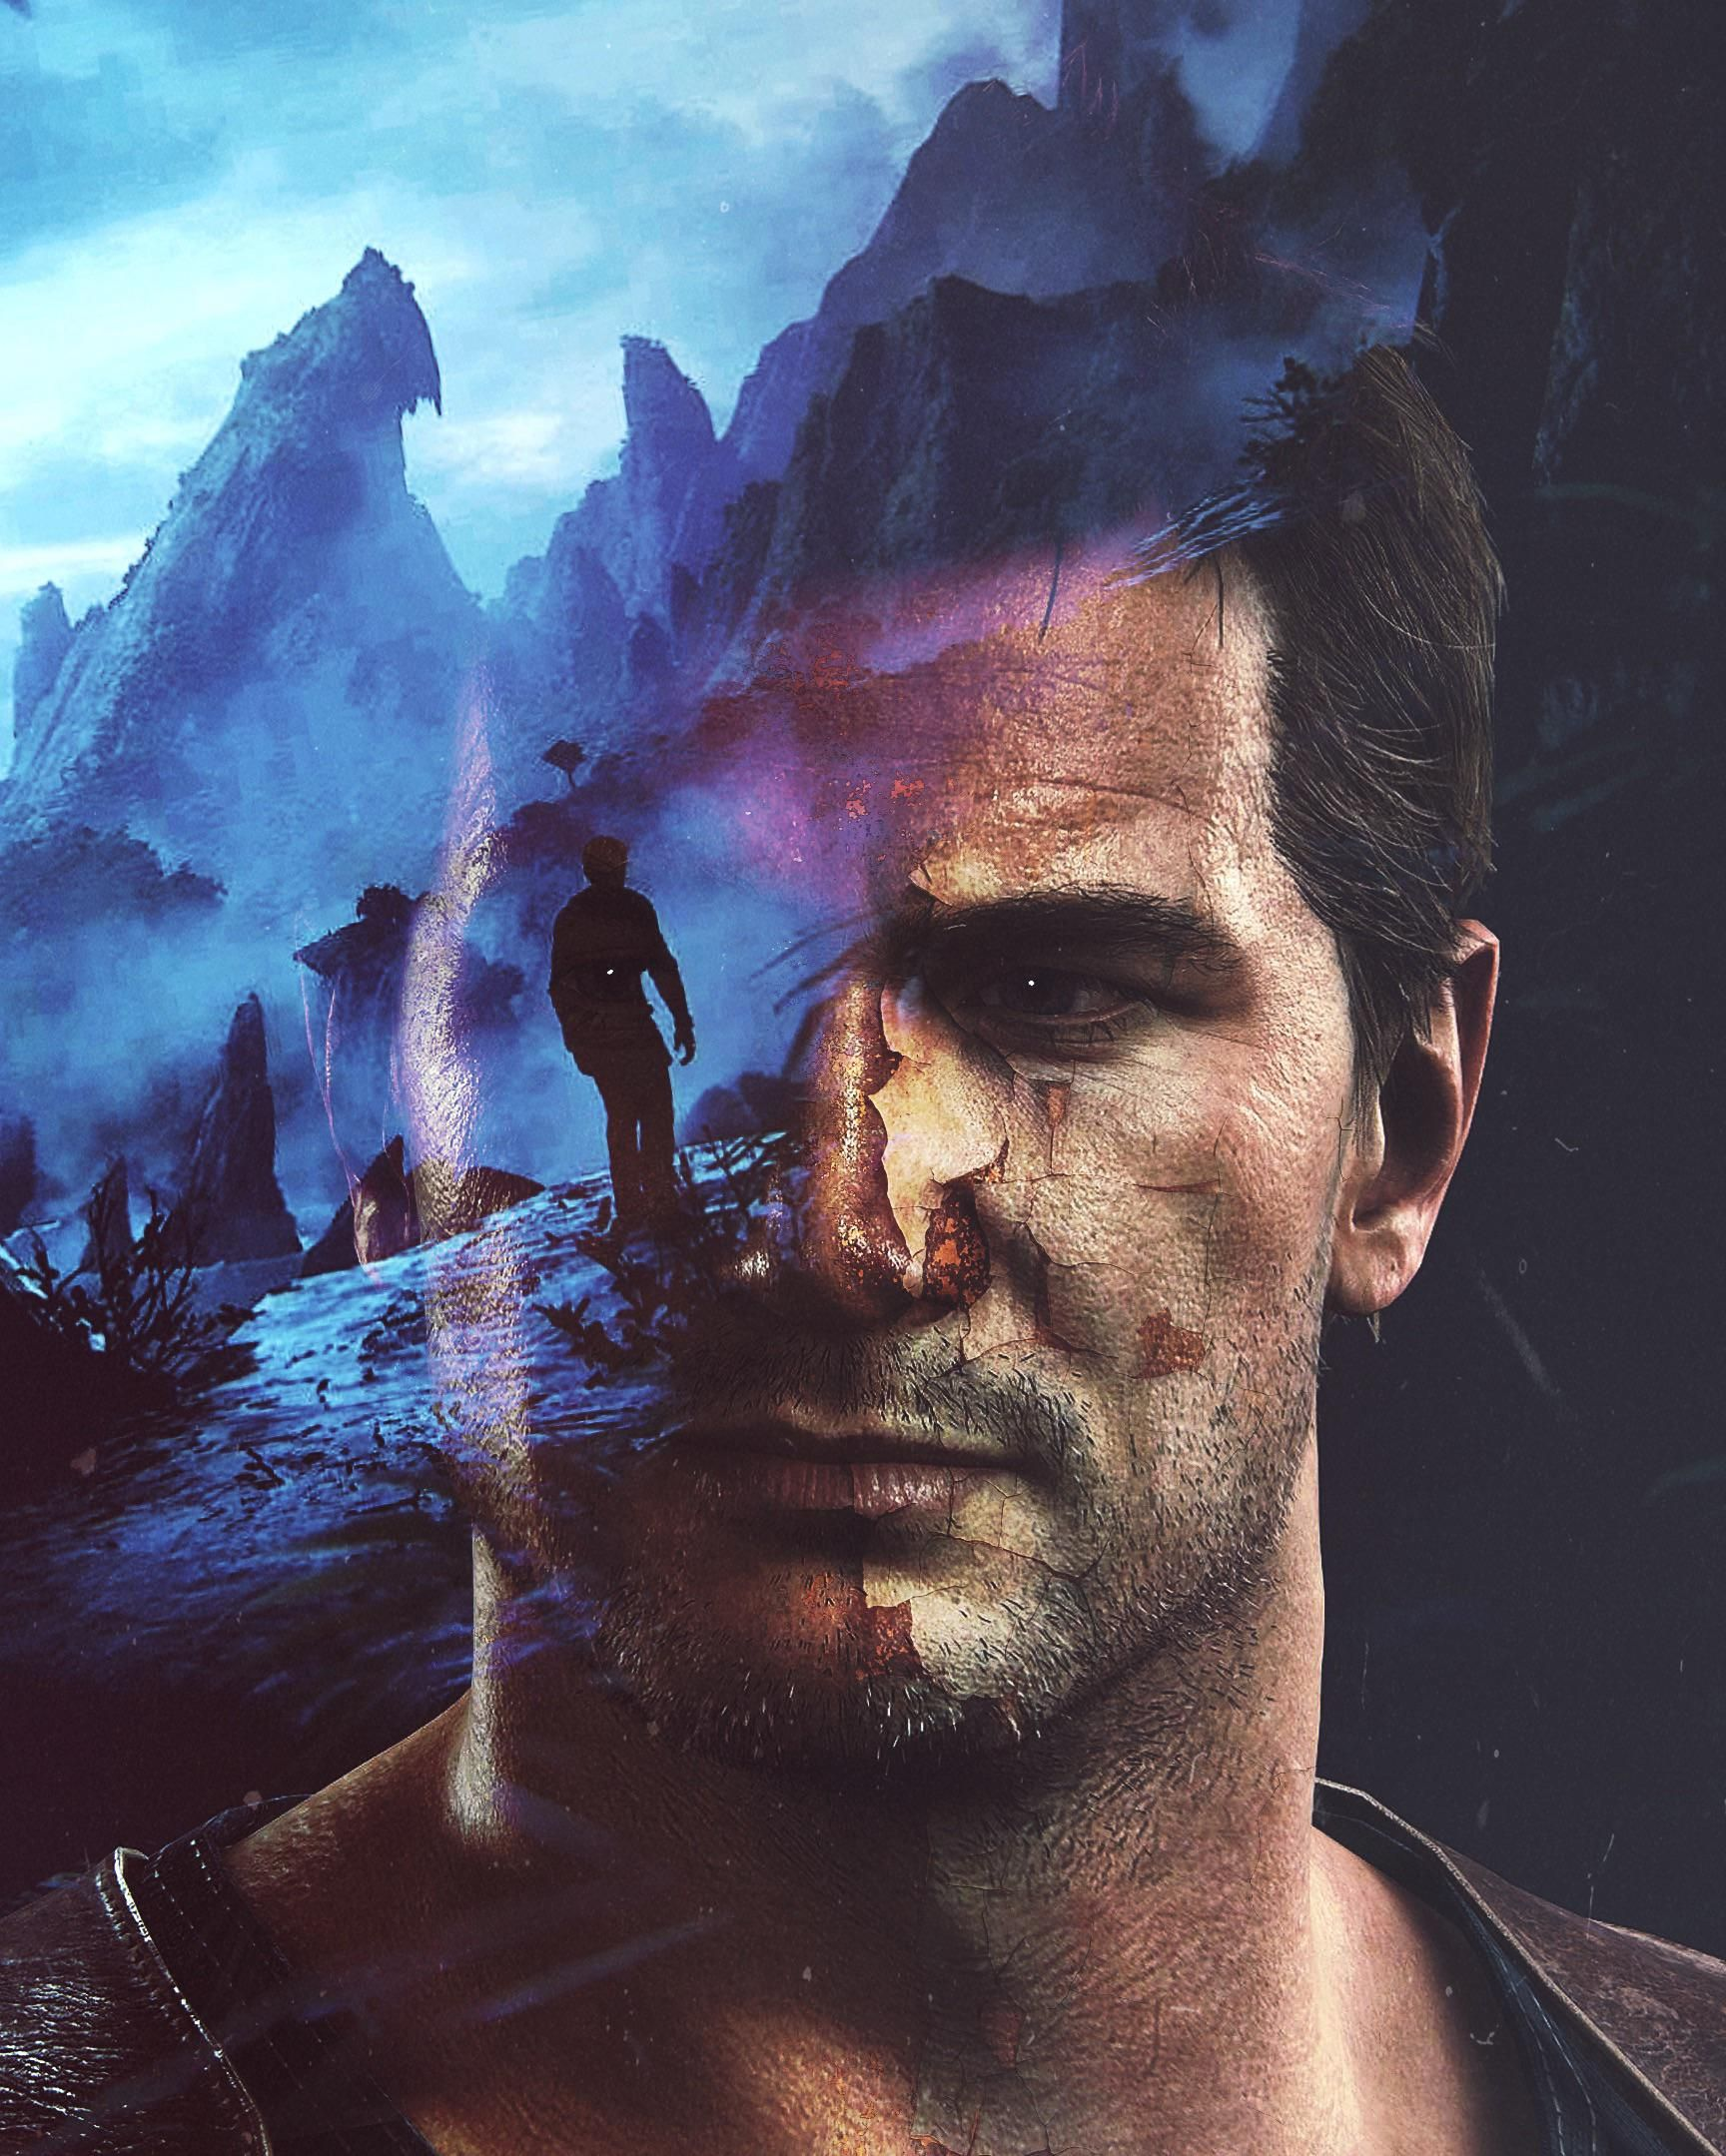 I Can Do This Hello From Serbia Uncharted Ps4 Uncharted4 Thelastofus Nathandrake Ps4share Playstation Gaming Uncharted Drake Uncharted Game Uncharted